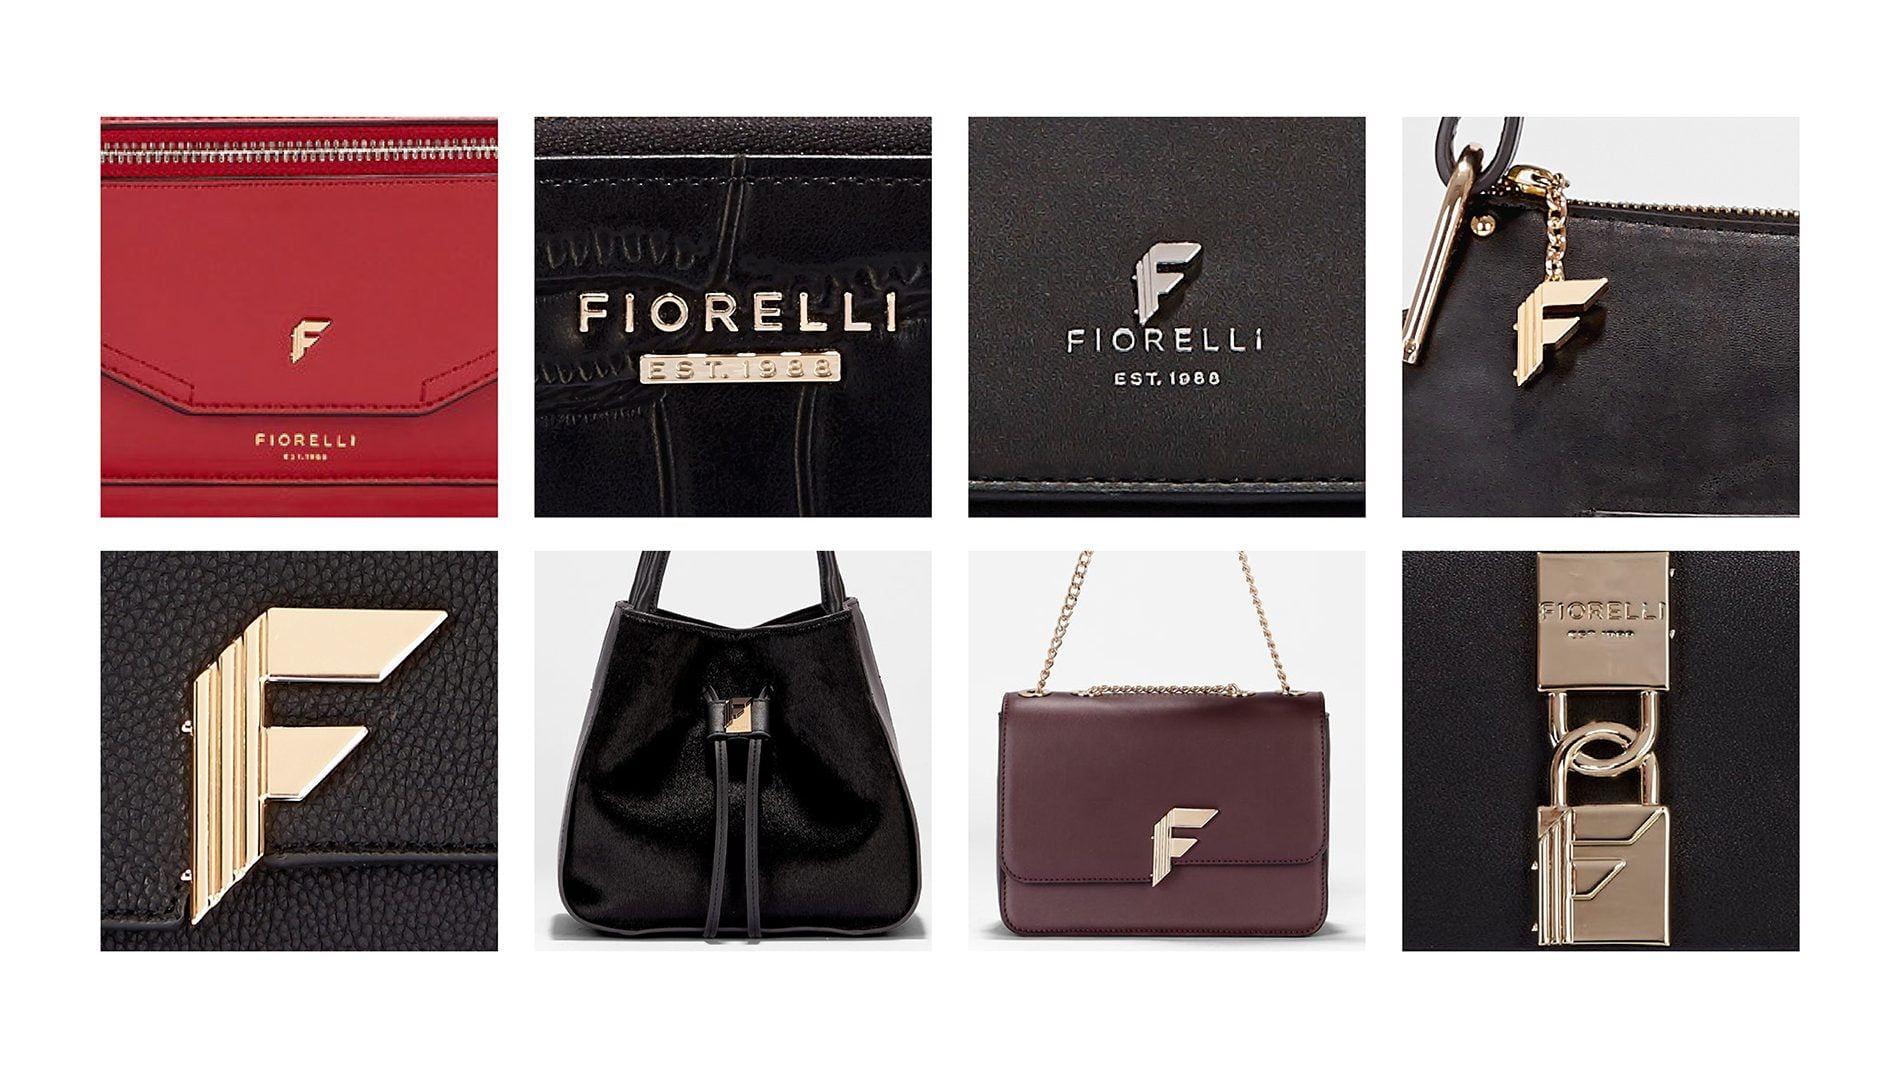 Fiorelli branding on handbags